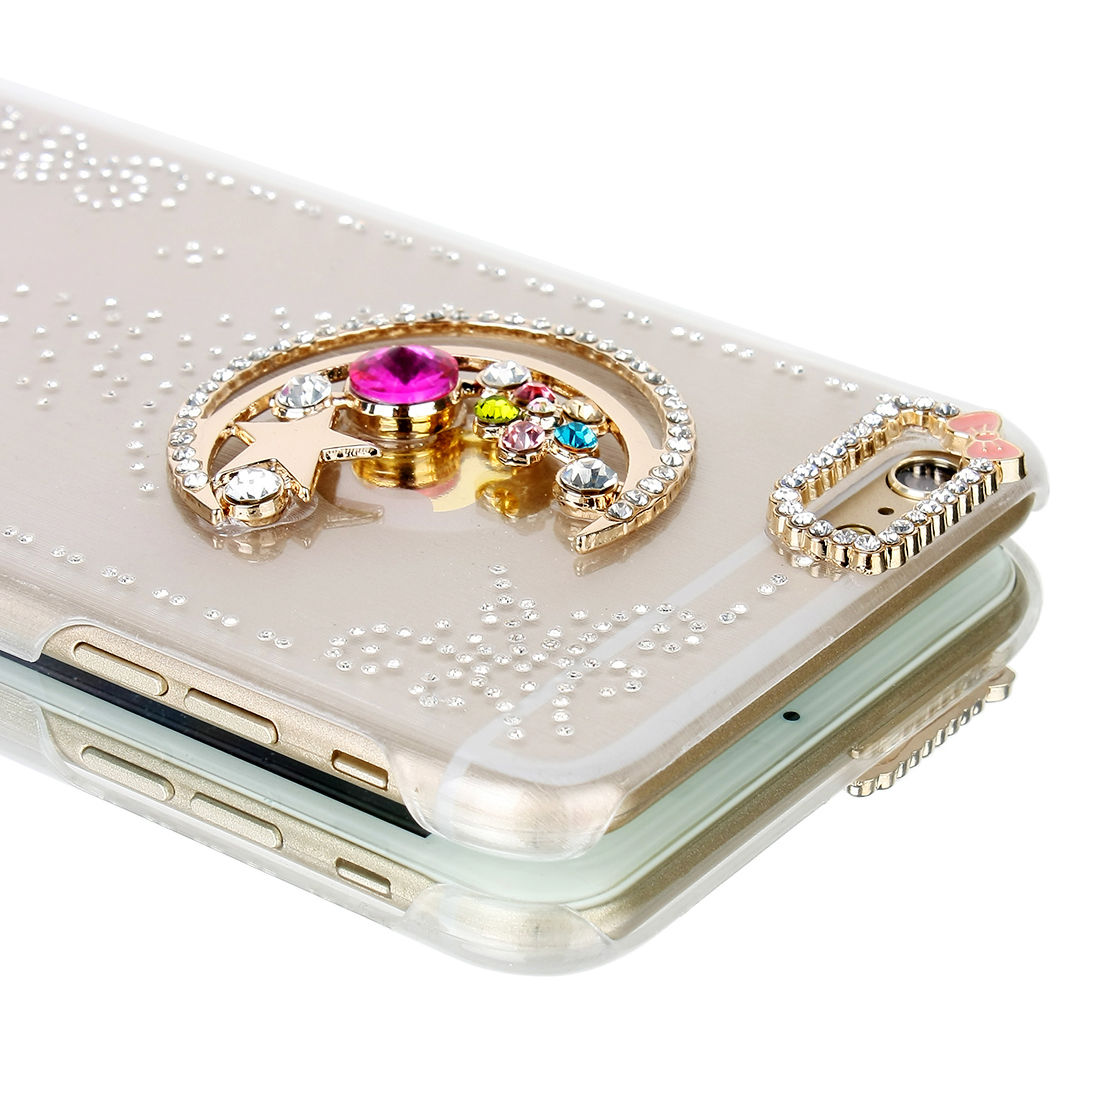 Bling Rhinestone Crystal Faux Diamond Hard Case Cover Clear Bumper For iPhone 6 Plus 5.5""